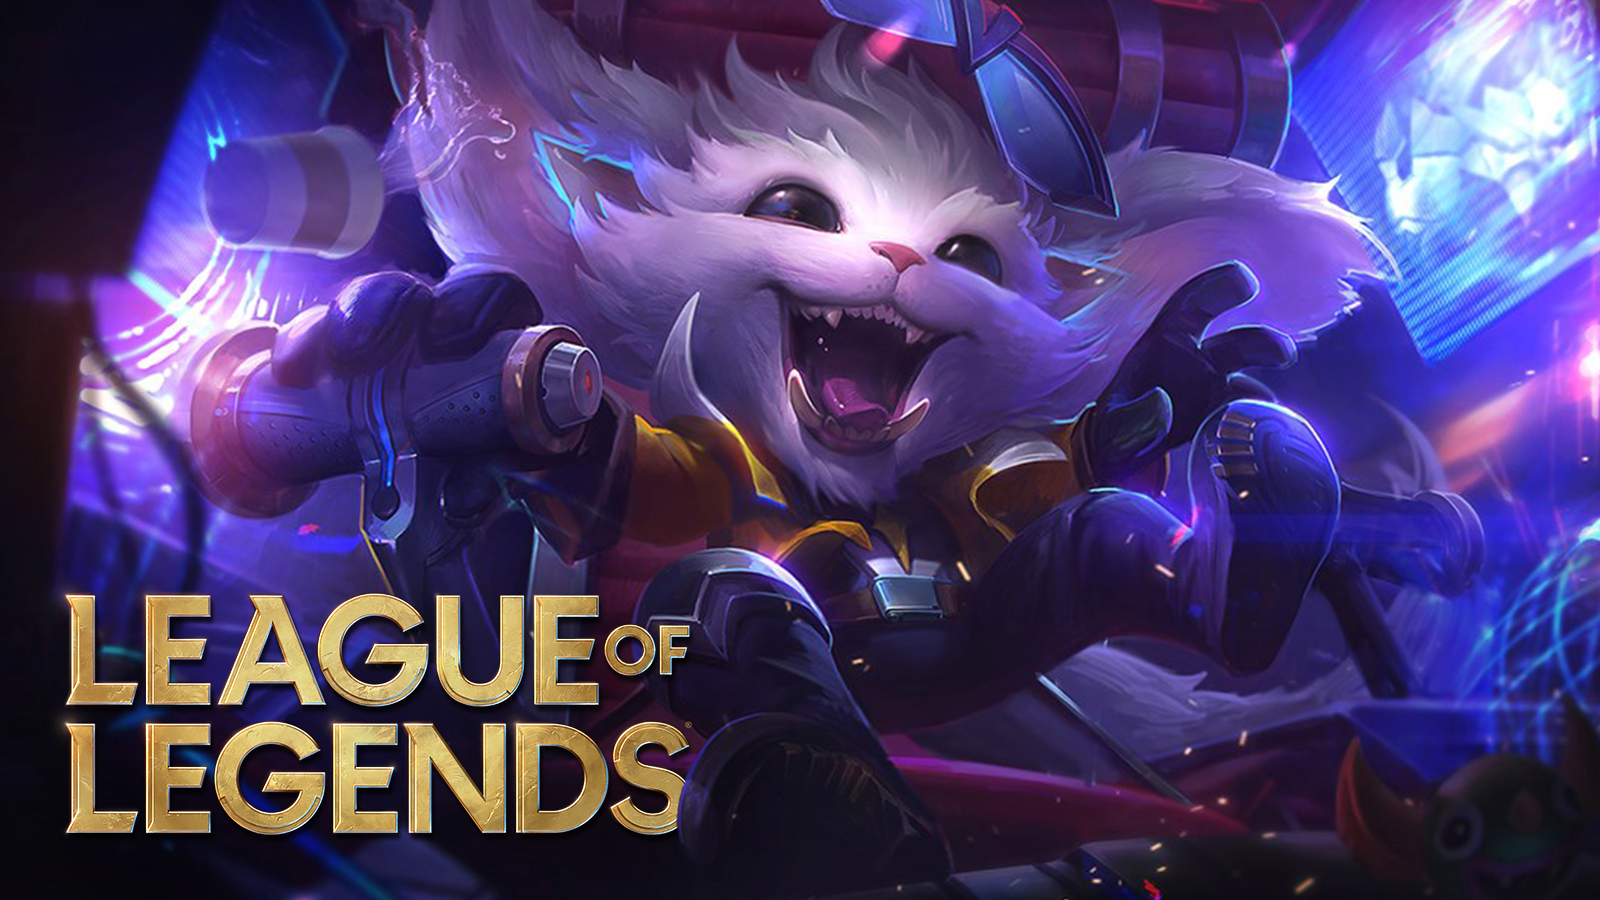 Super Galaxy Gnar yelling above League of Legends patch 11.1.